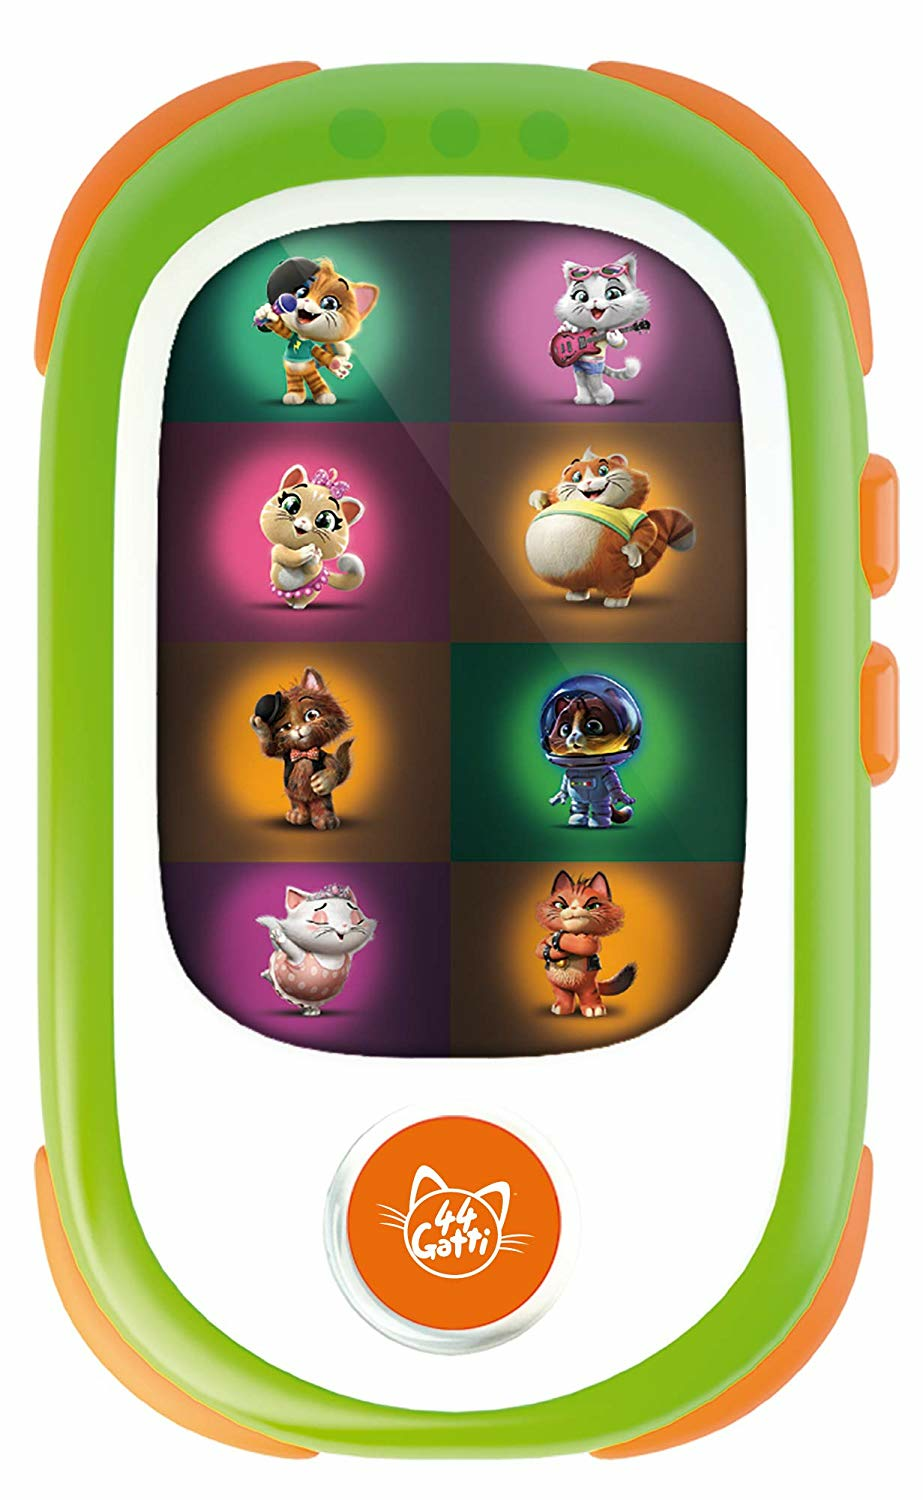 Image of 44 Gatti Baby Smartphone Led